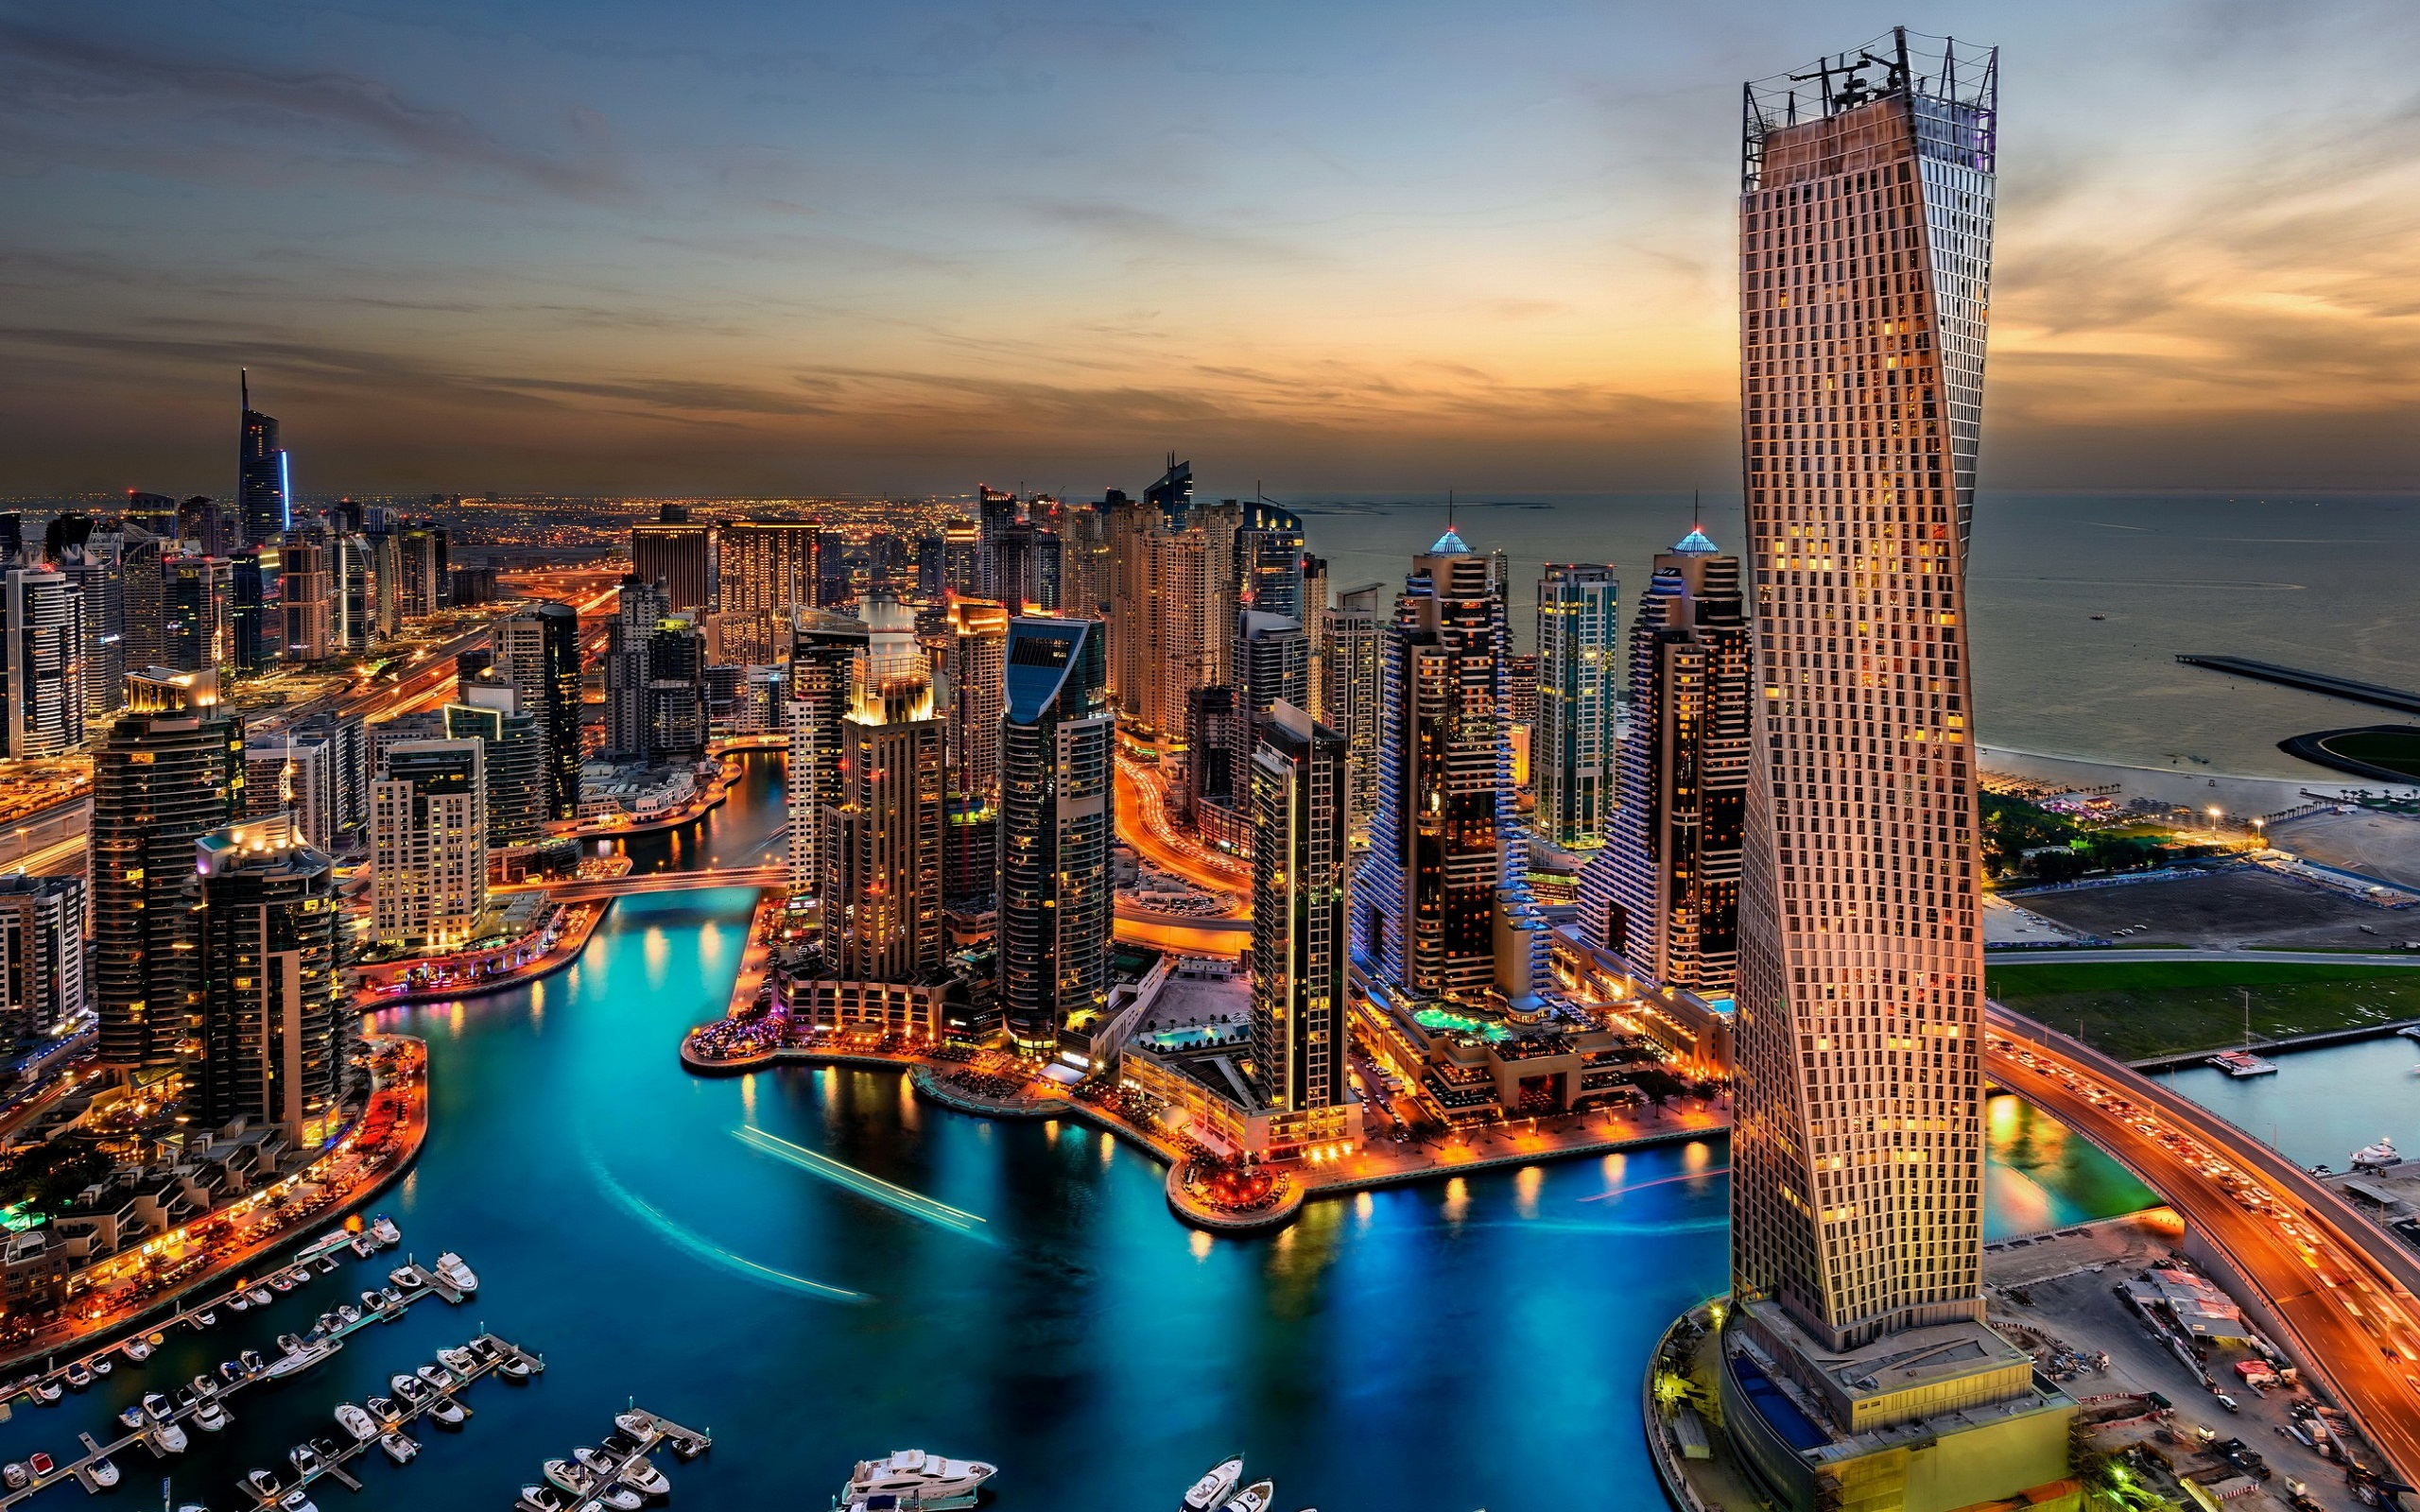 Luxury hotels in dubai wallpapers 2560x1600 1628374 for Posh hotels in dubai